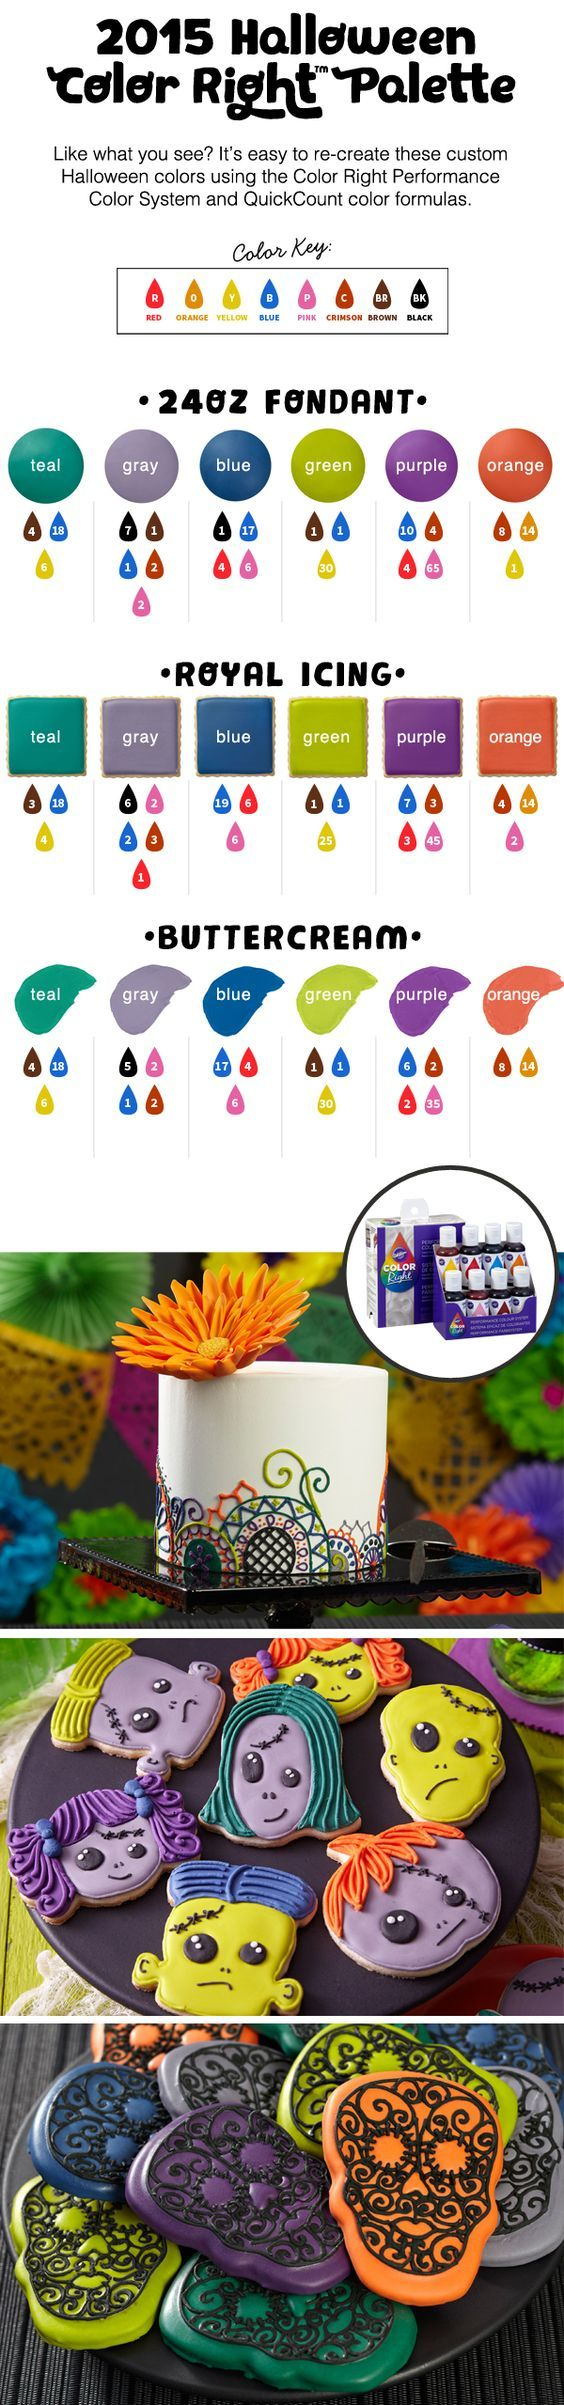 This Halloween, expand your sweet treat decorating beyond the usual orange and black. We've created a brand new Color Right Performance Color System palette for Halloween so that you can color fondant, royal icing or buttercream a variety of amazing shades like teal, gray, blue, green and purple.: